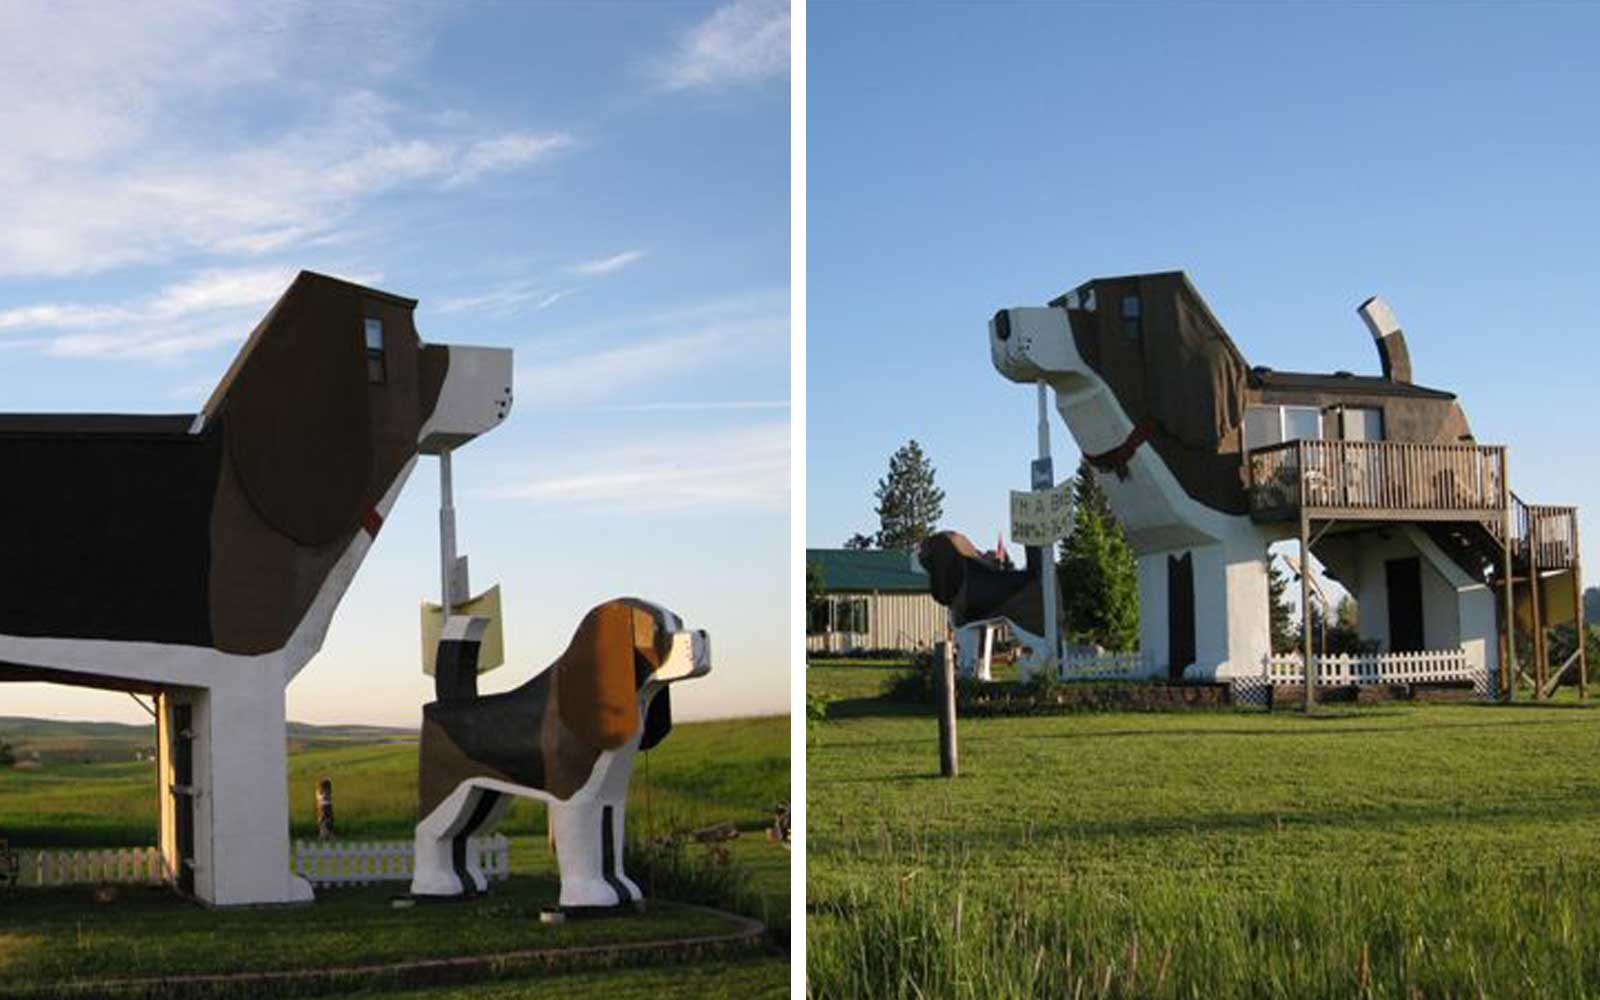 This Airbnb Shaped Like a Giant Beagle Is Every Dog Lover's Dream Vacation Home